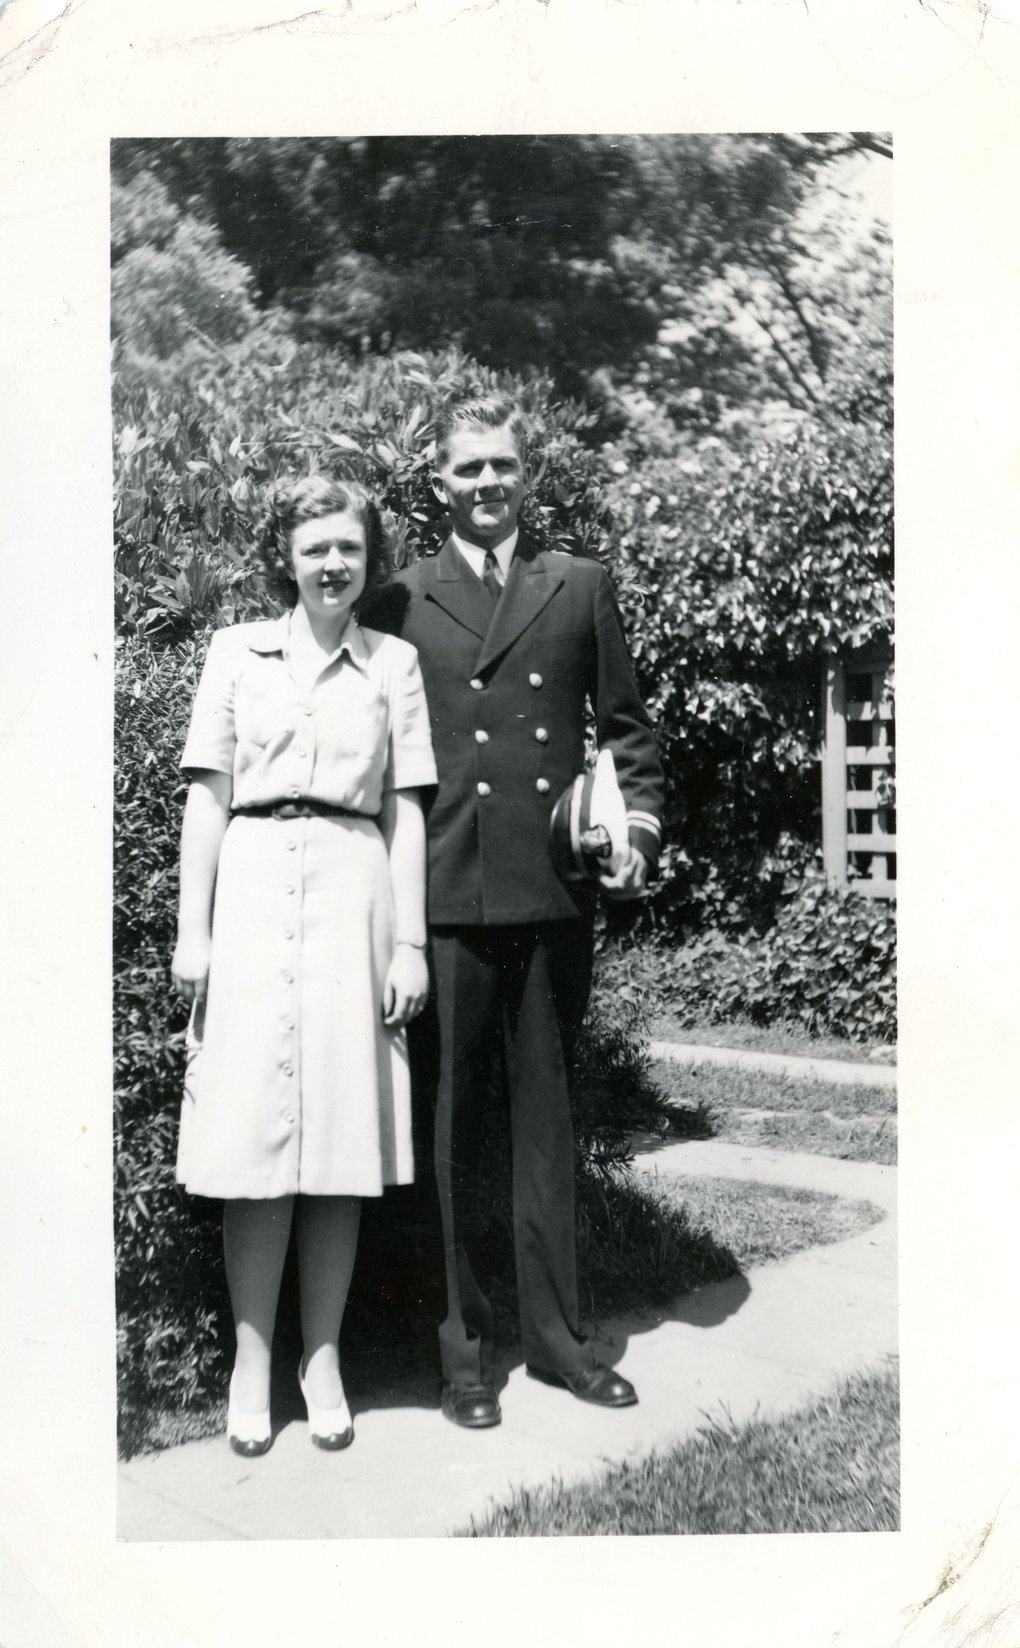 Jae Anderson's parents, Barbara and Bob Hale, met in college and married in 1943. Jae, their only child, was born Jan. 1, 1946. (Courtesy of Jae Anderson)